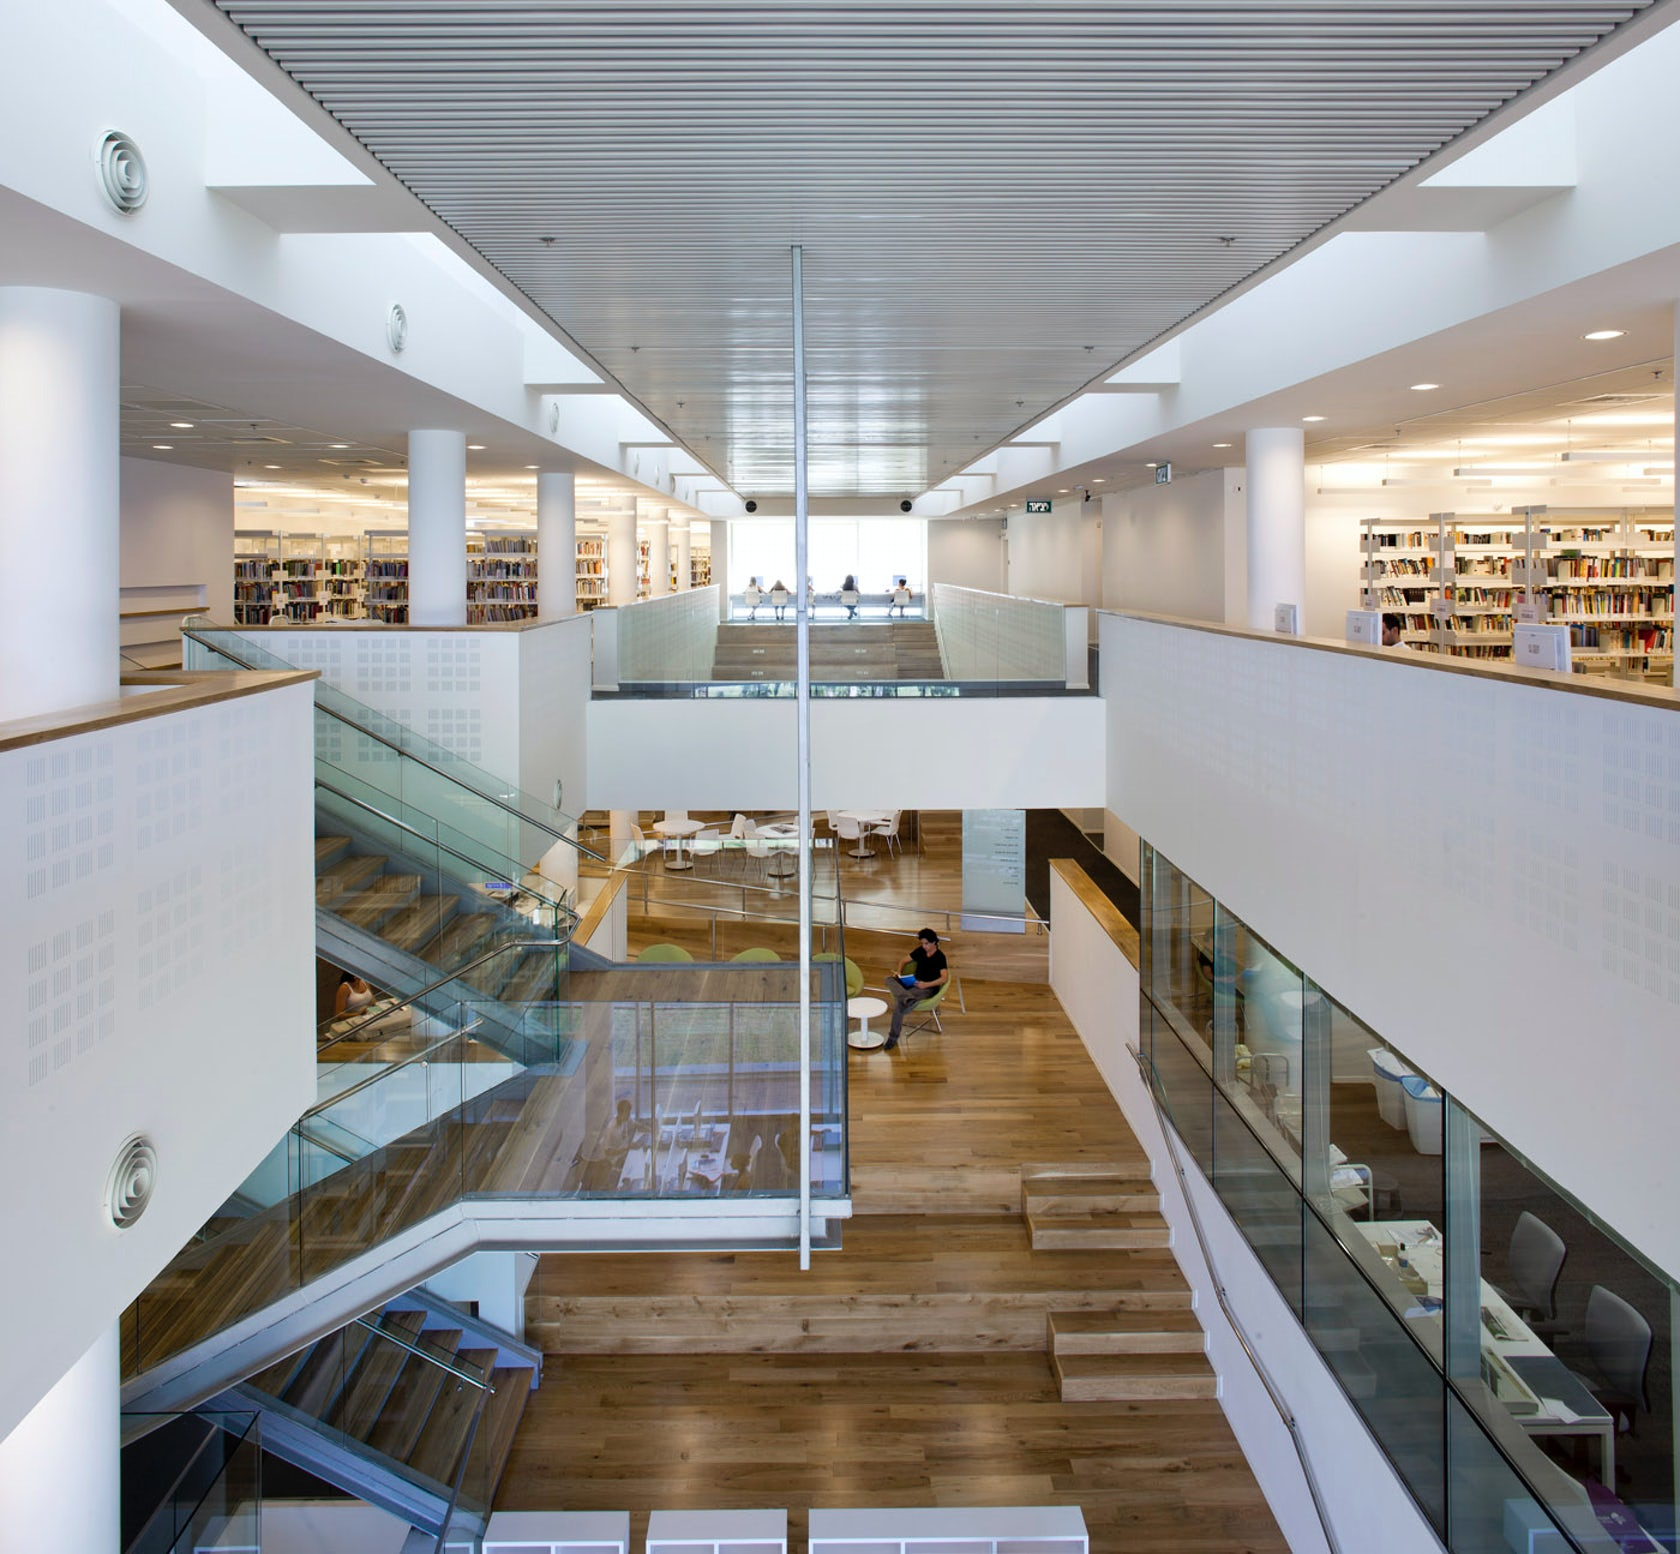 Kinneret college on the sea of galilee architizer for Interior design new york university